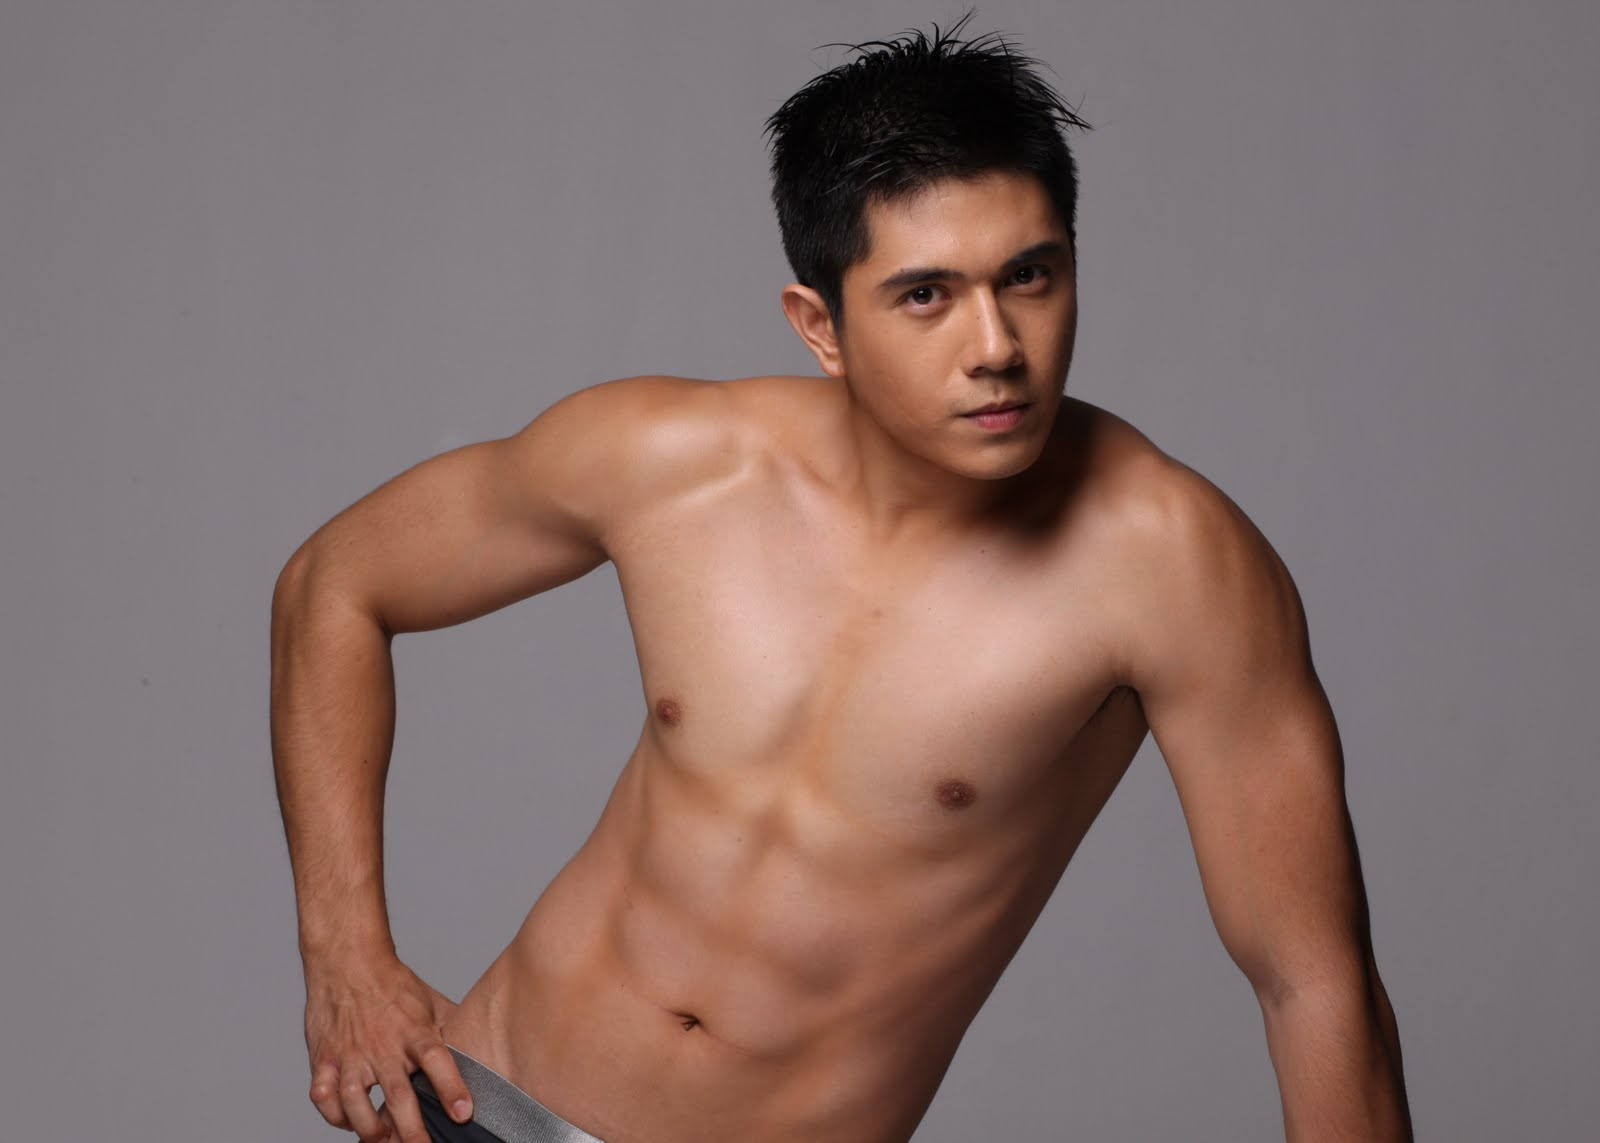 Male pinoy celebrities images 11